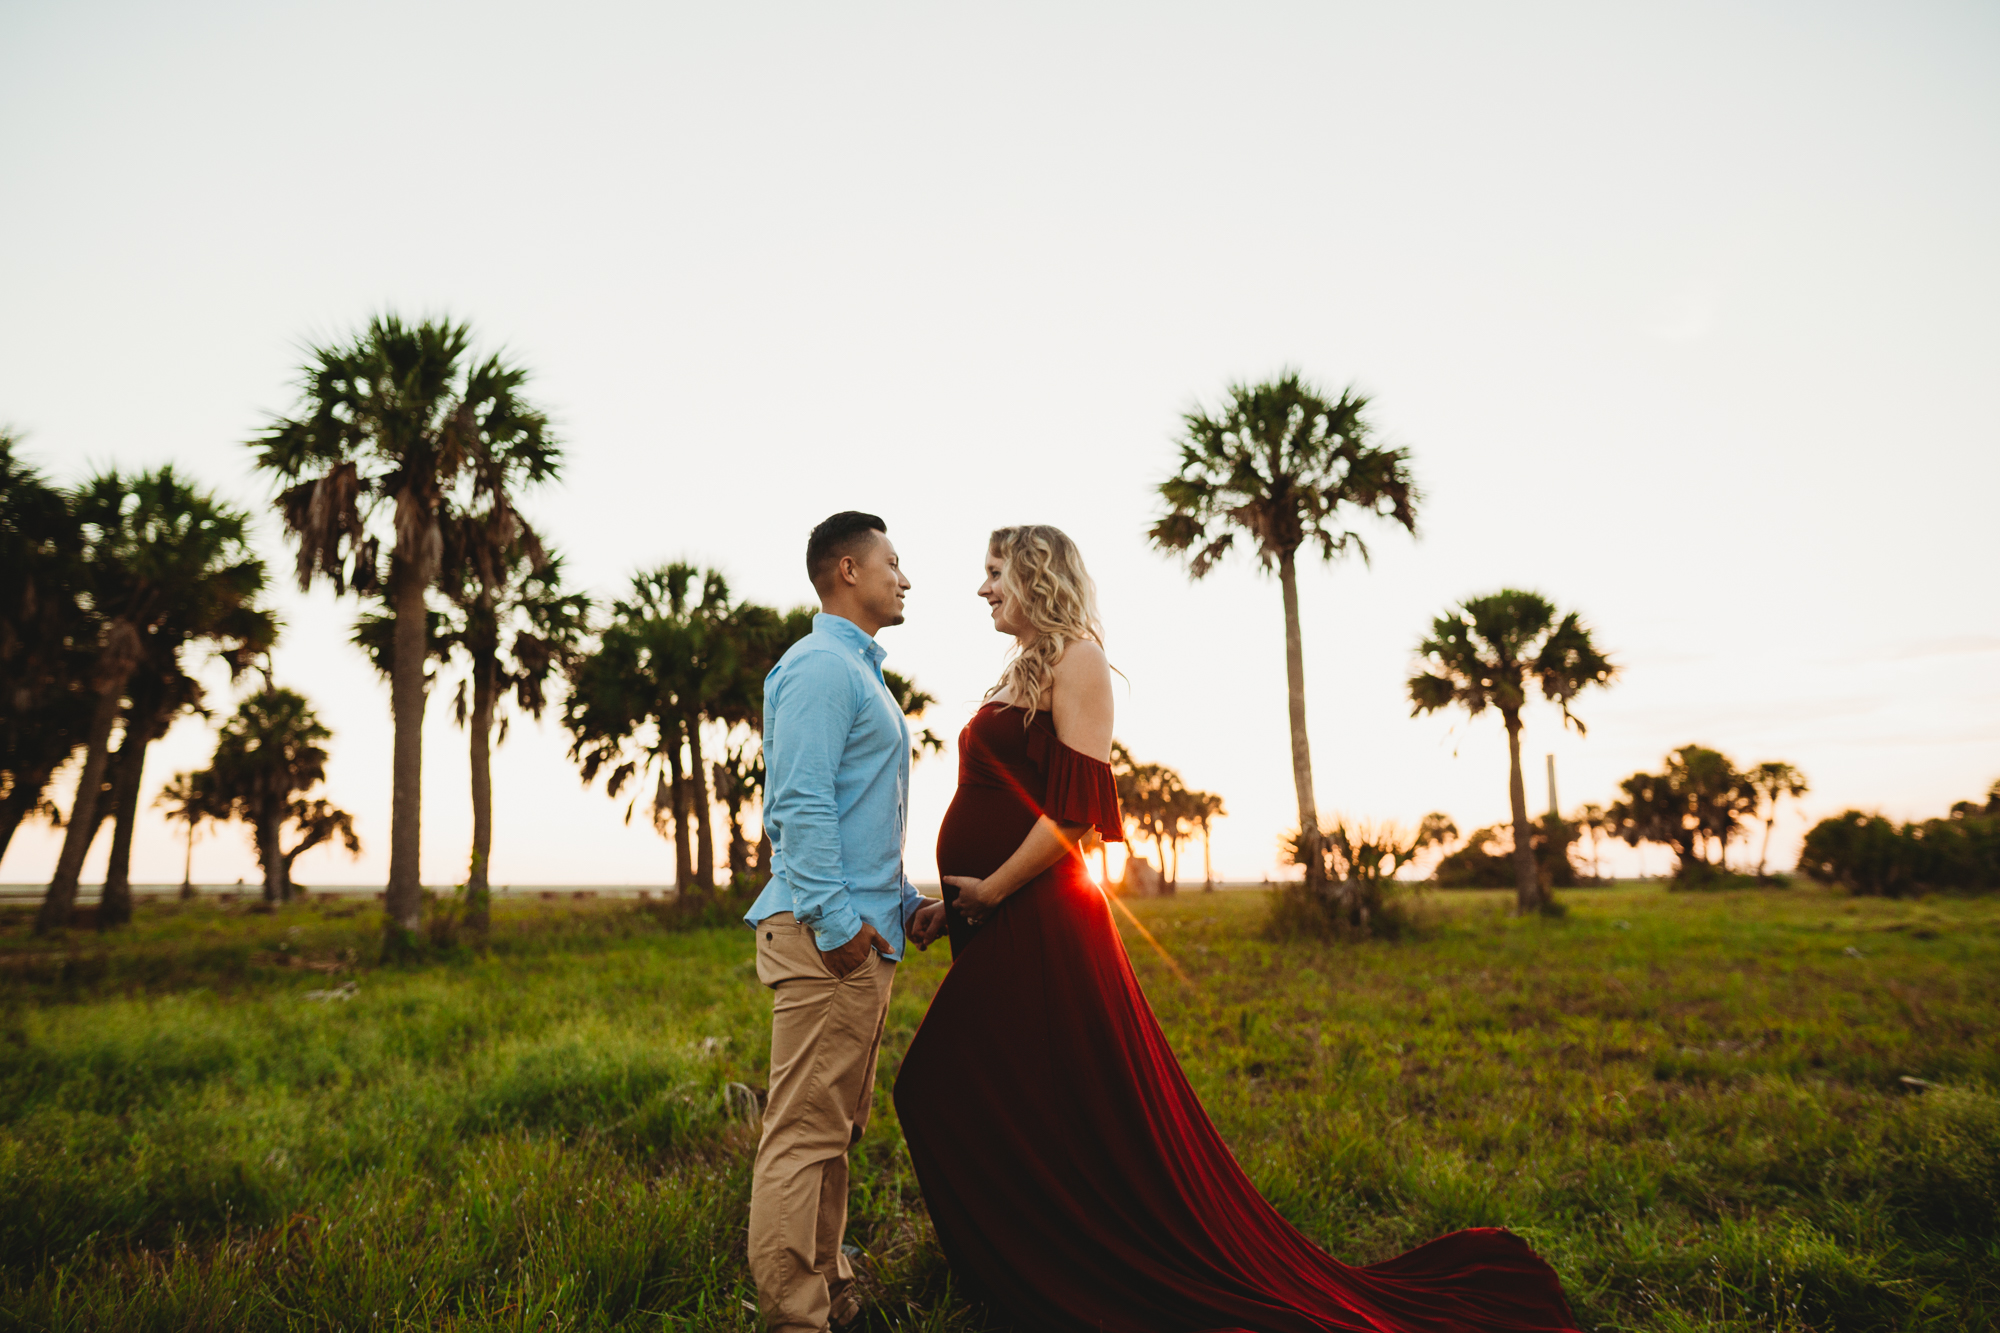 couples maternity photography, couple maternity pictures on the beach in fl